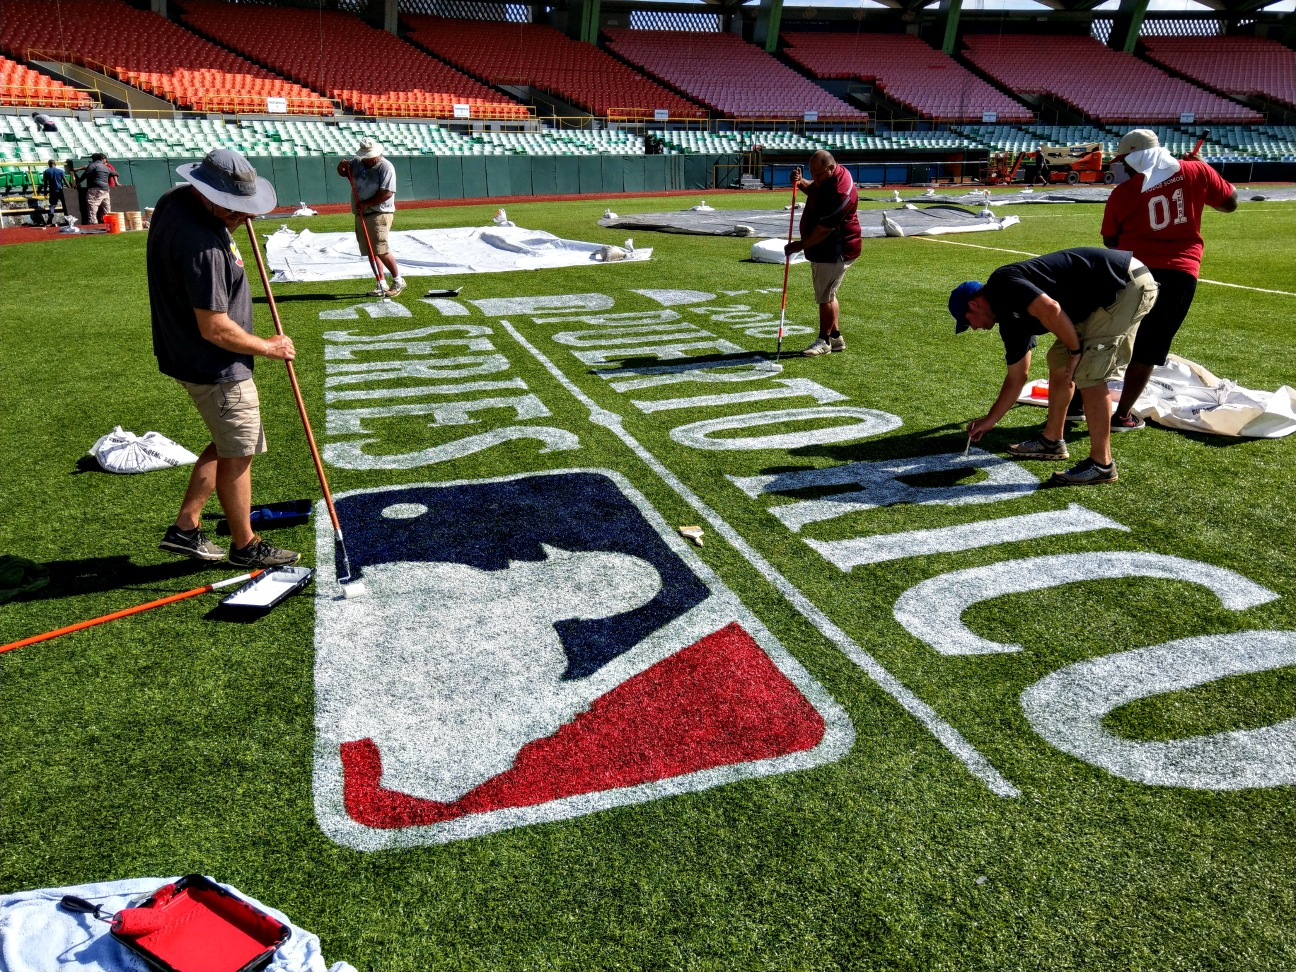 Preparing the field for Major League Baseball in Puerto Rico